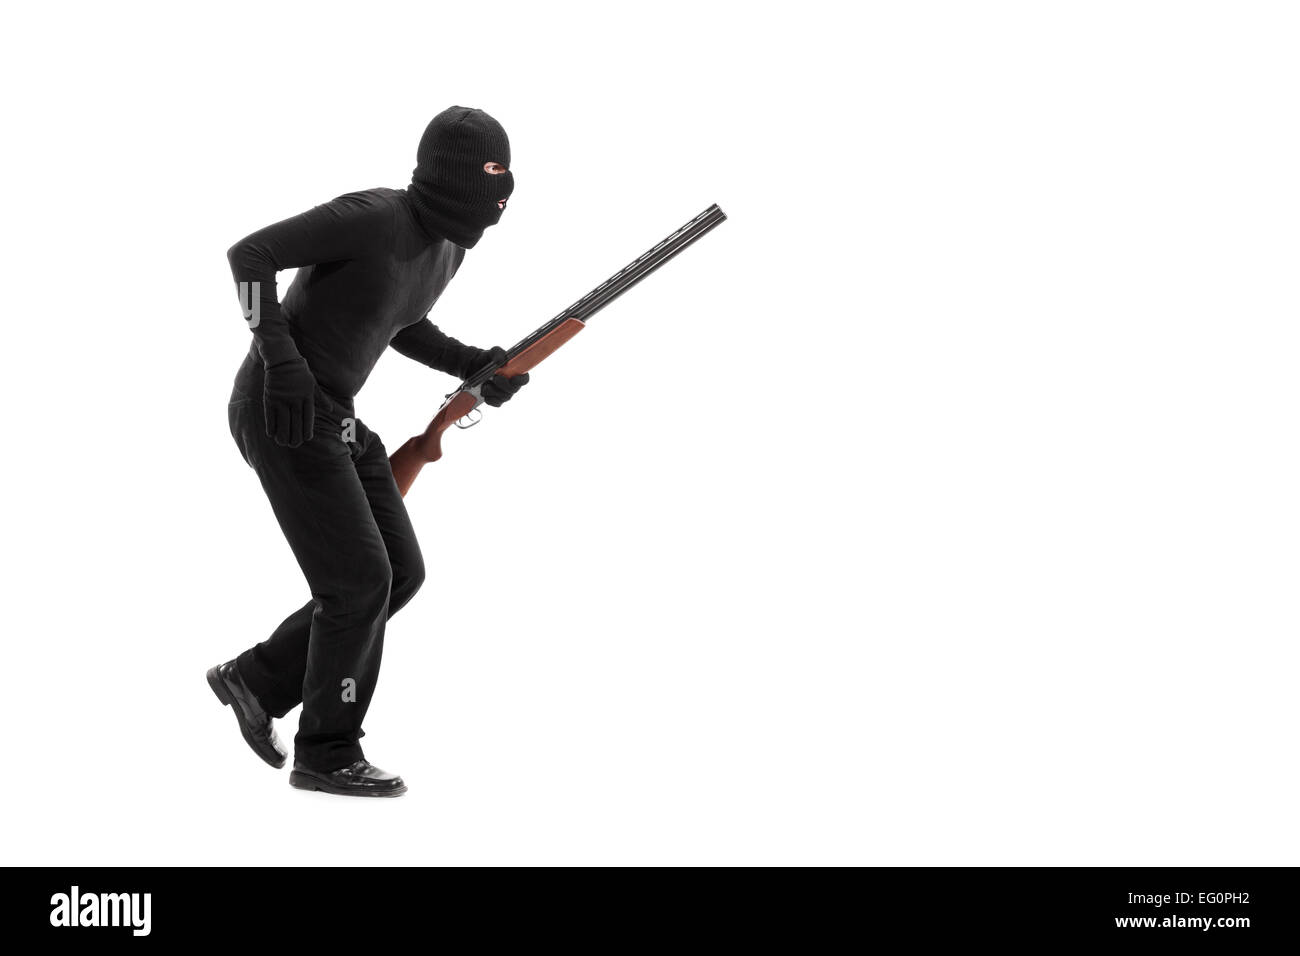 Stealthy criminal with a mask and a rifle walking isolated on white background - Stock Image